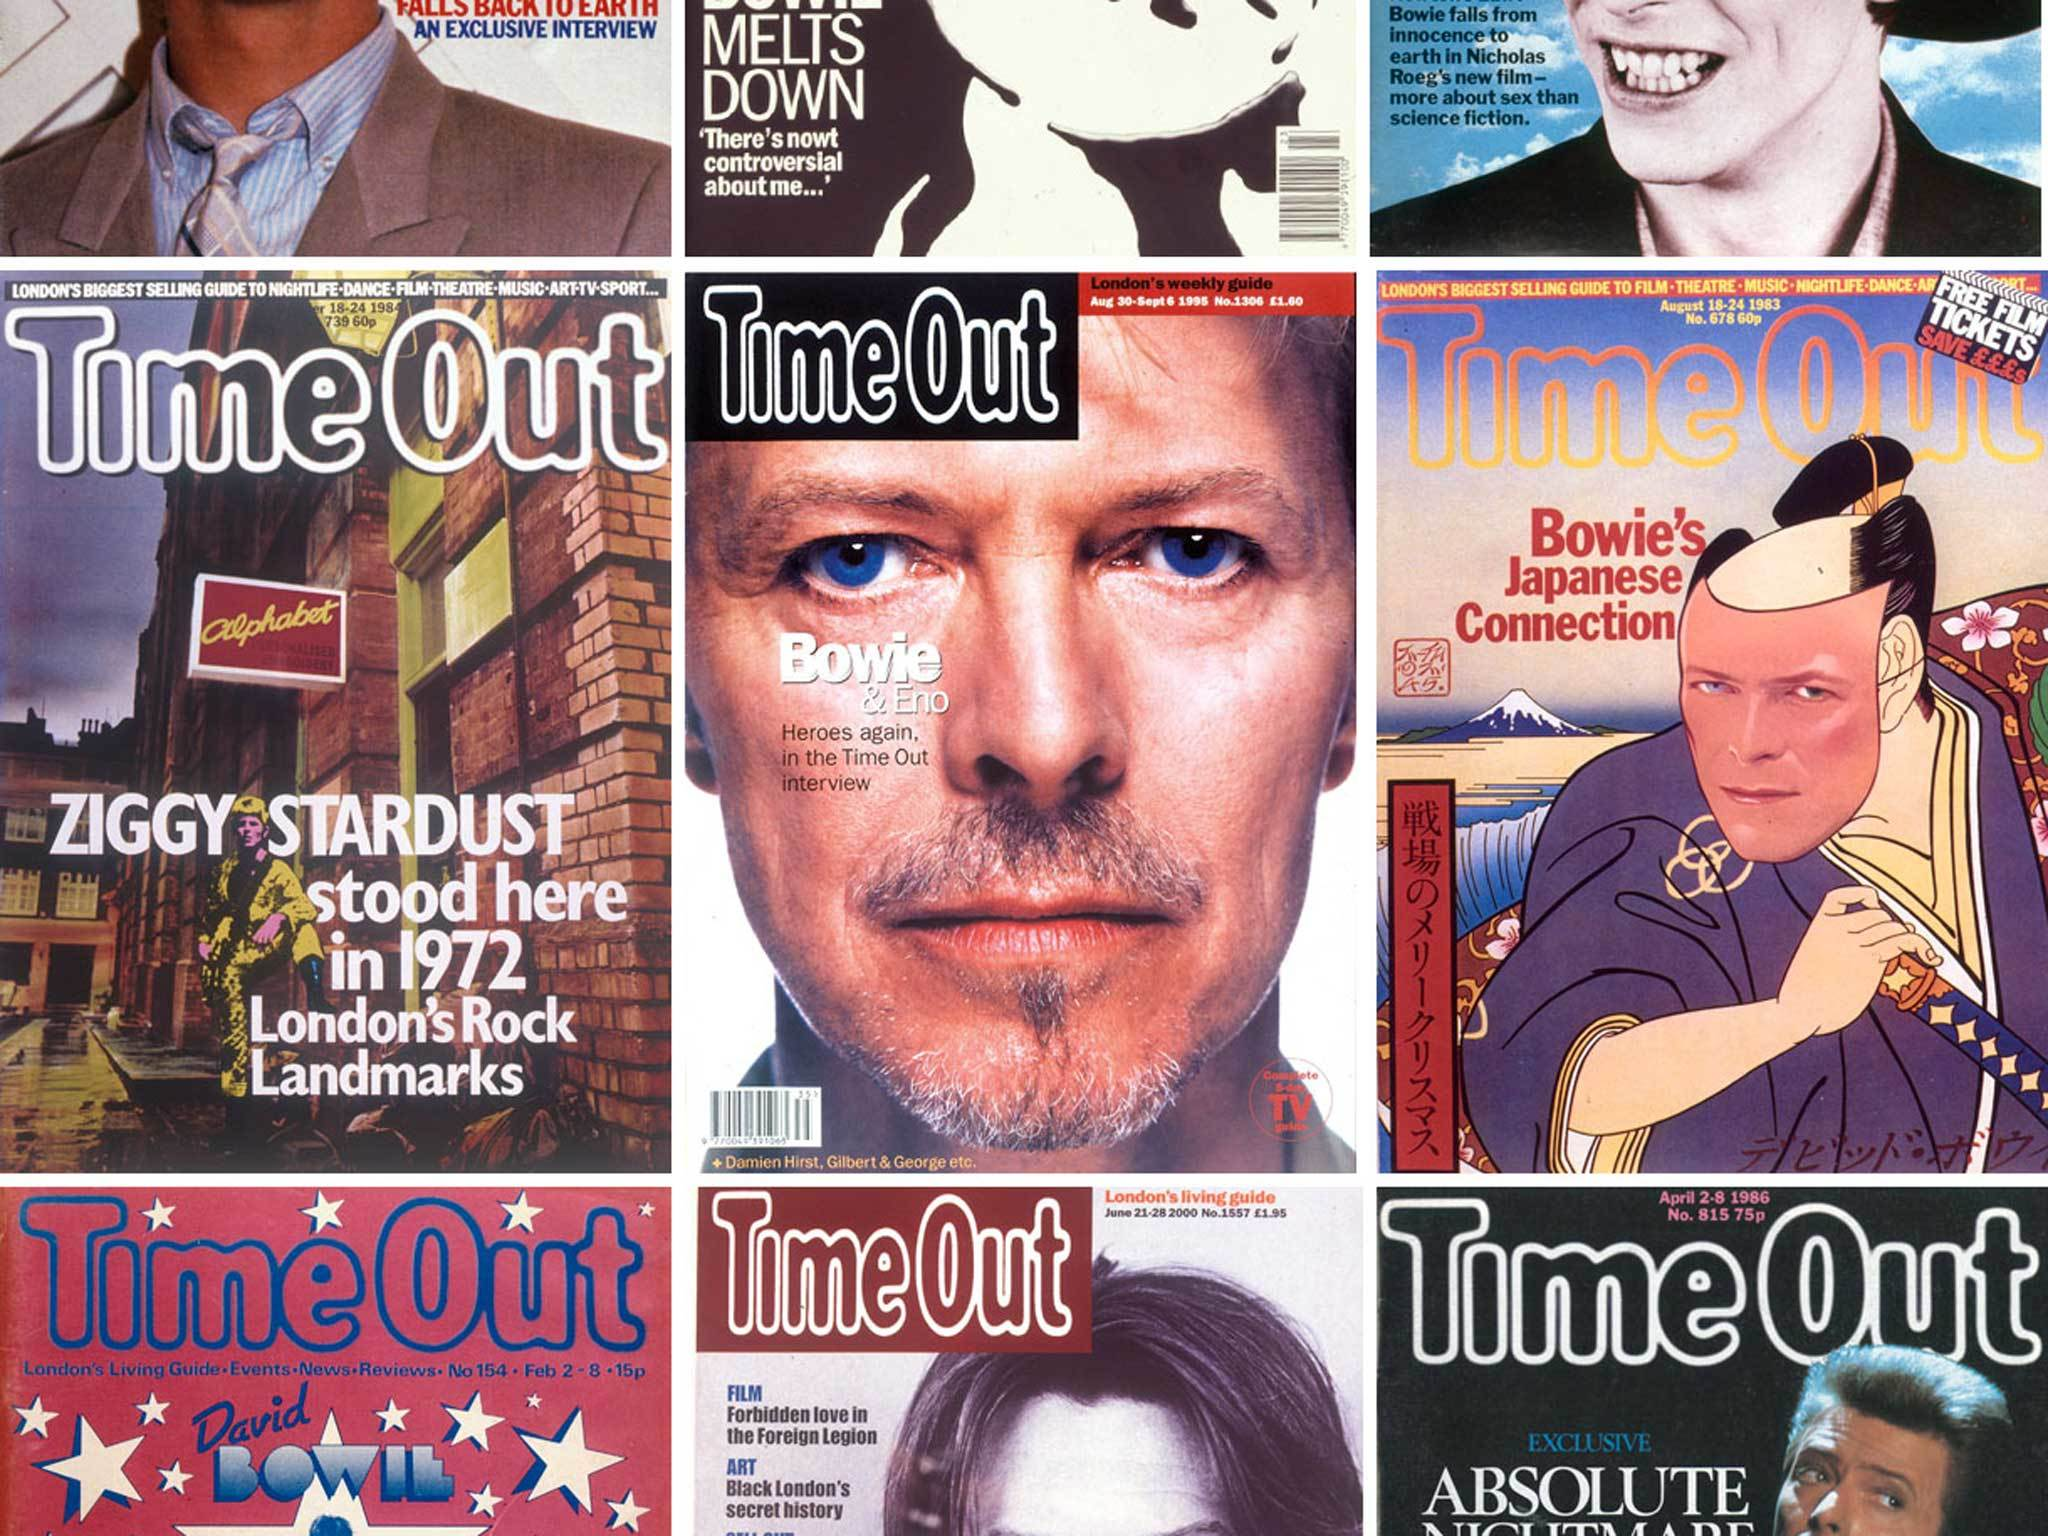 David Bowie Time Out covers crops